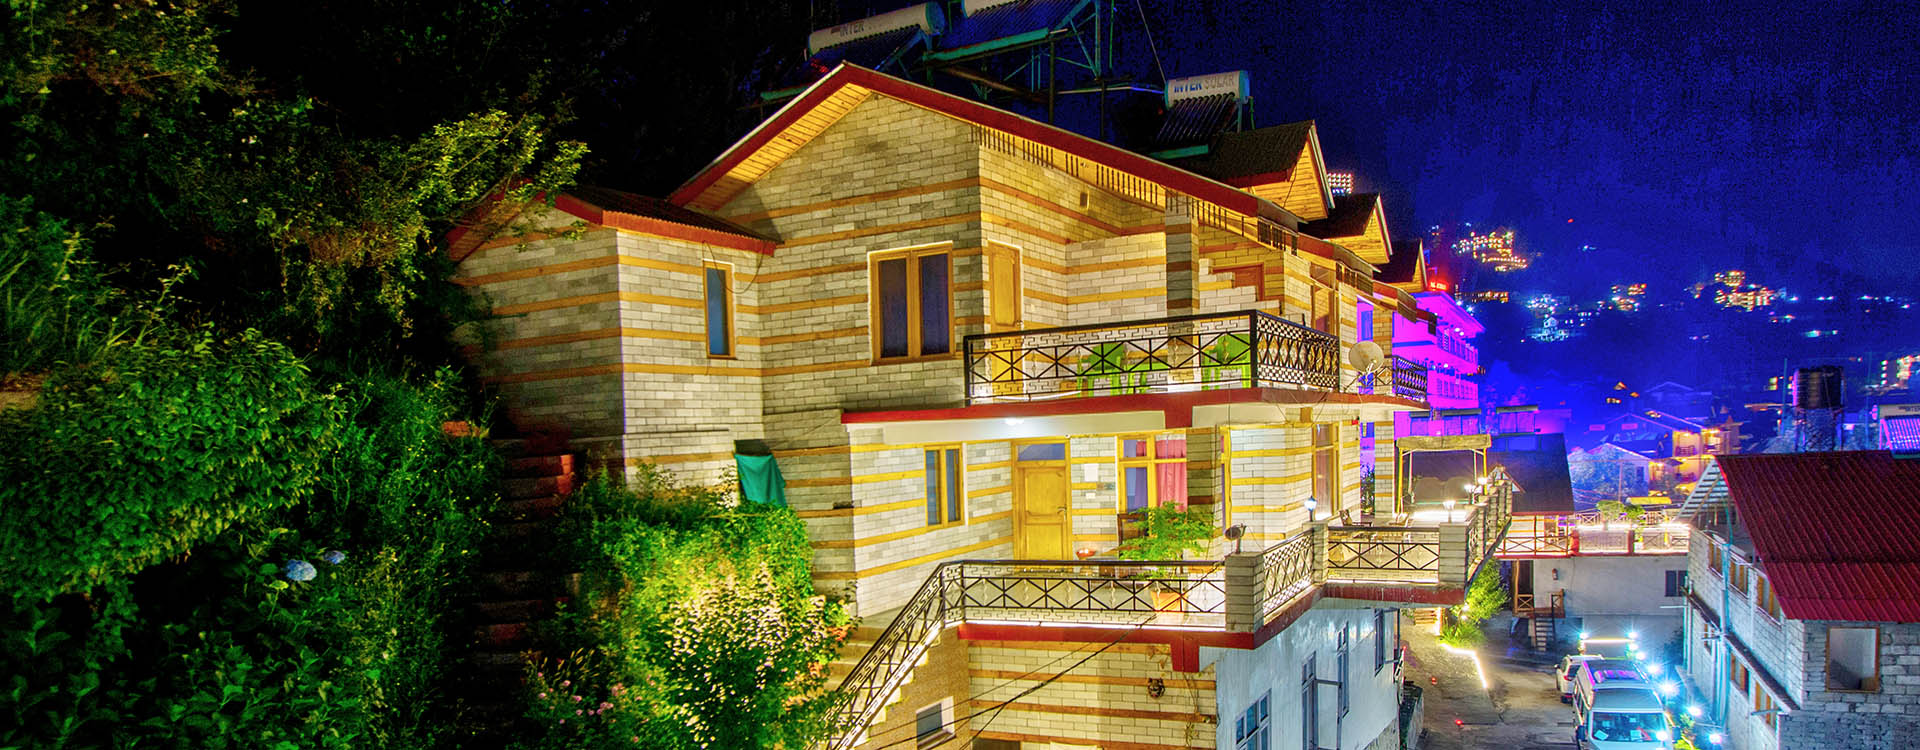 Apple Bud Cottages Manali - budget cottages in manali